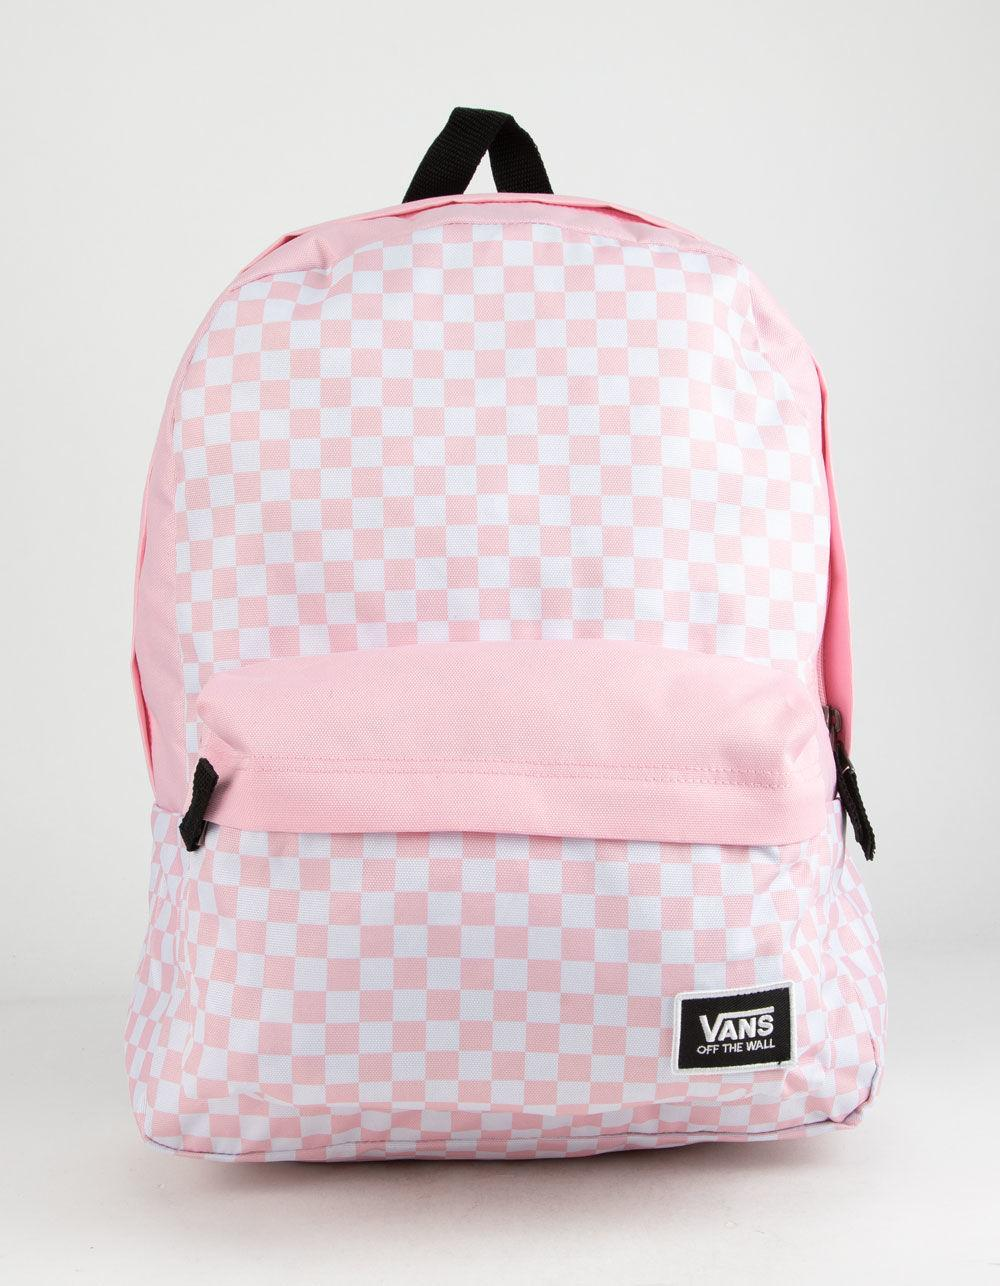 3689797dd25 Lyst - Vans Realm Classic Fairy Tale Checkerboard Backpack in Pink